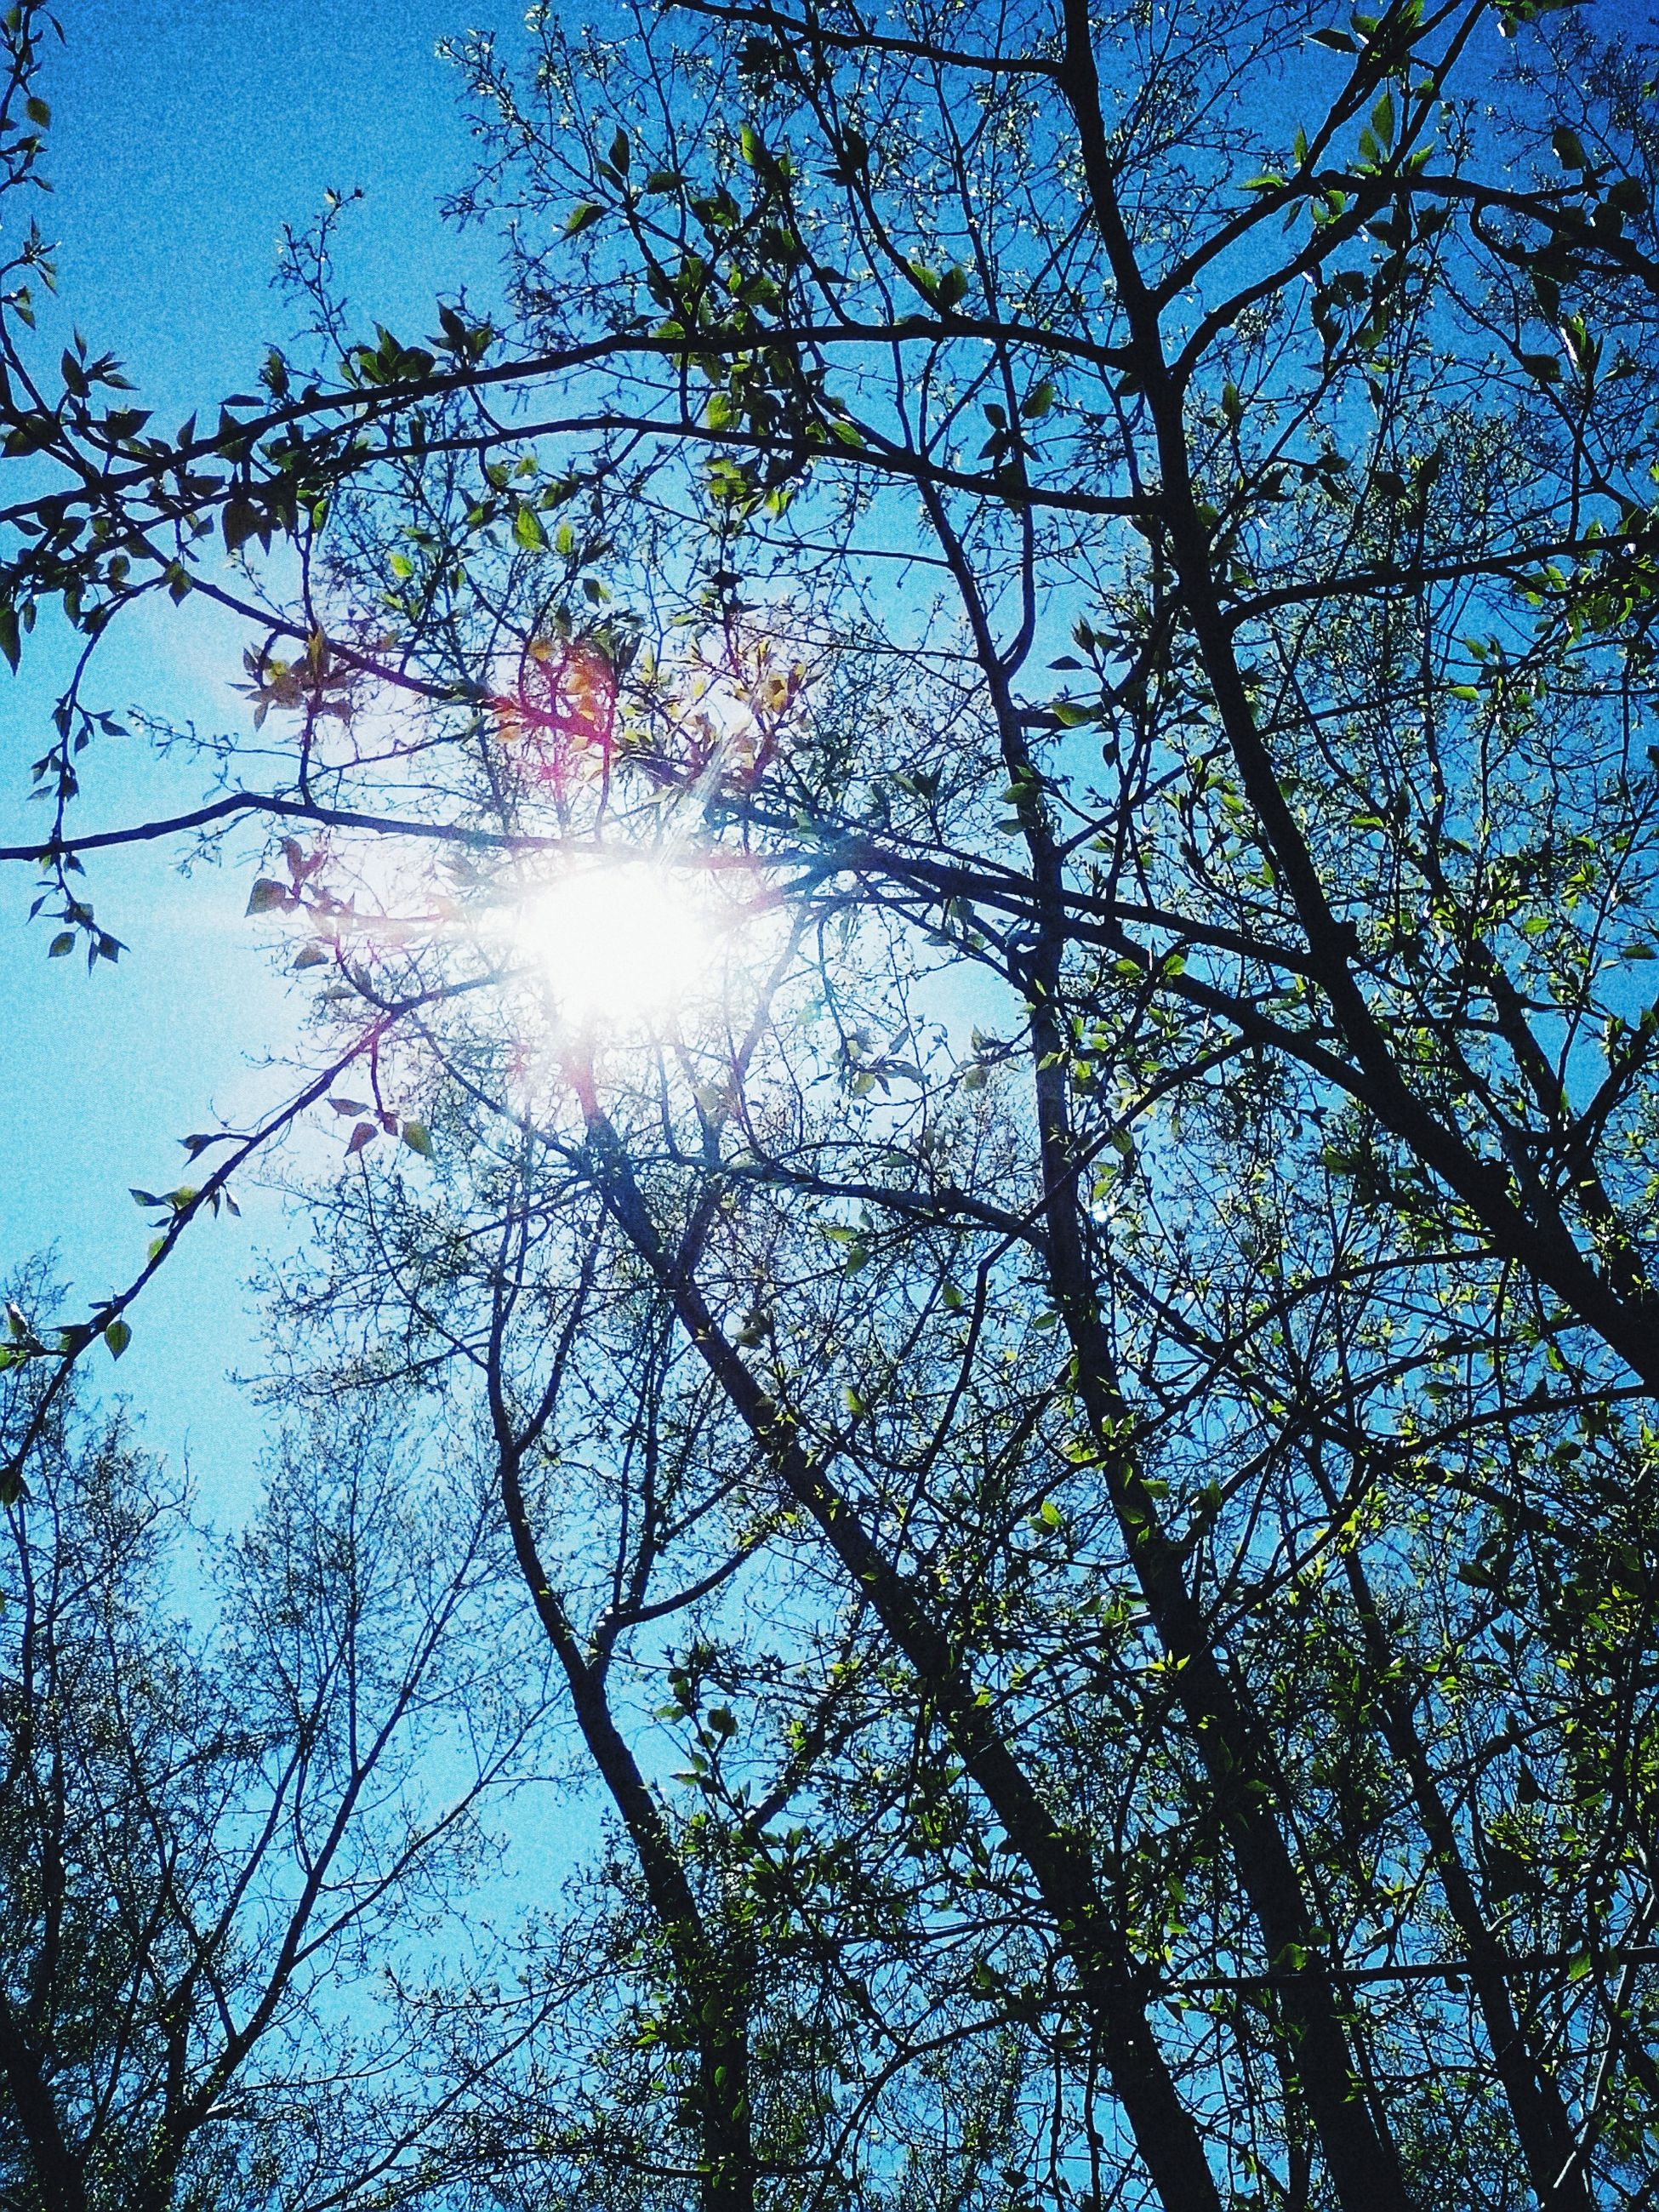 sun, tree, low angle view, branch, sunbeam, sunlight, lens flare, beauty in nature, tranquility, nature, growth, sky, clear sky, blue, bright, scenics, sunny, back lit, silhouette, day